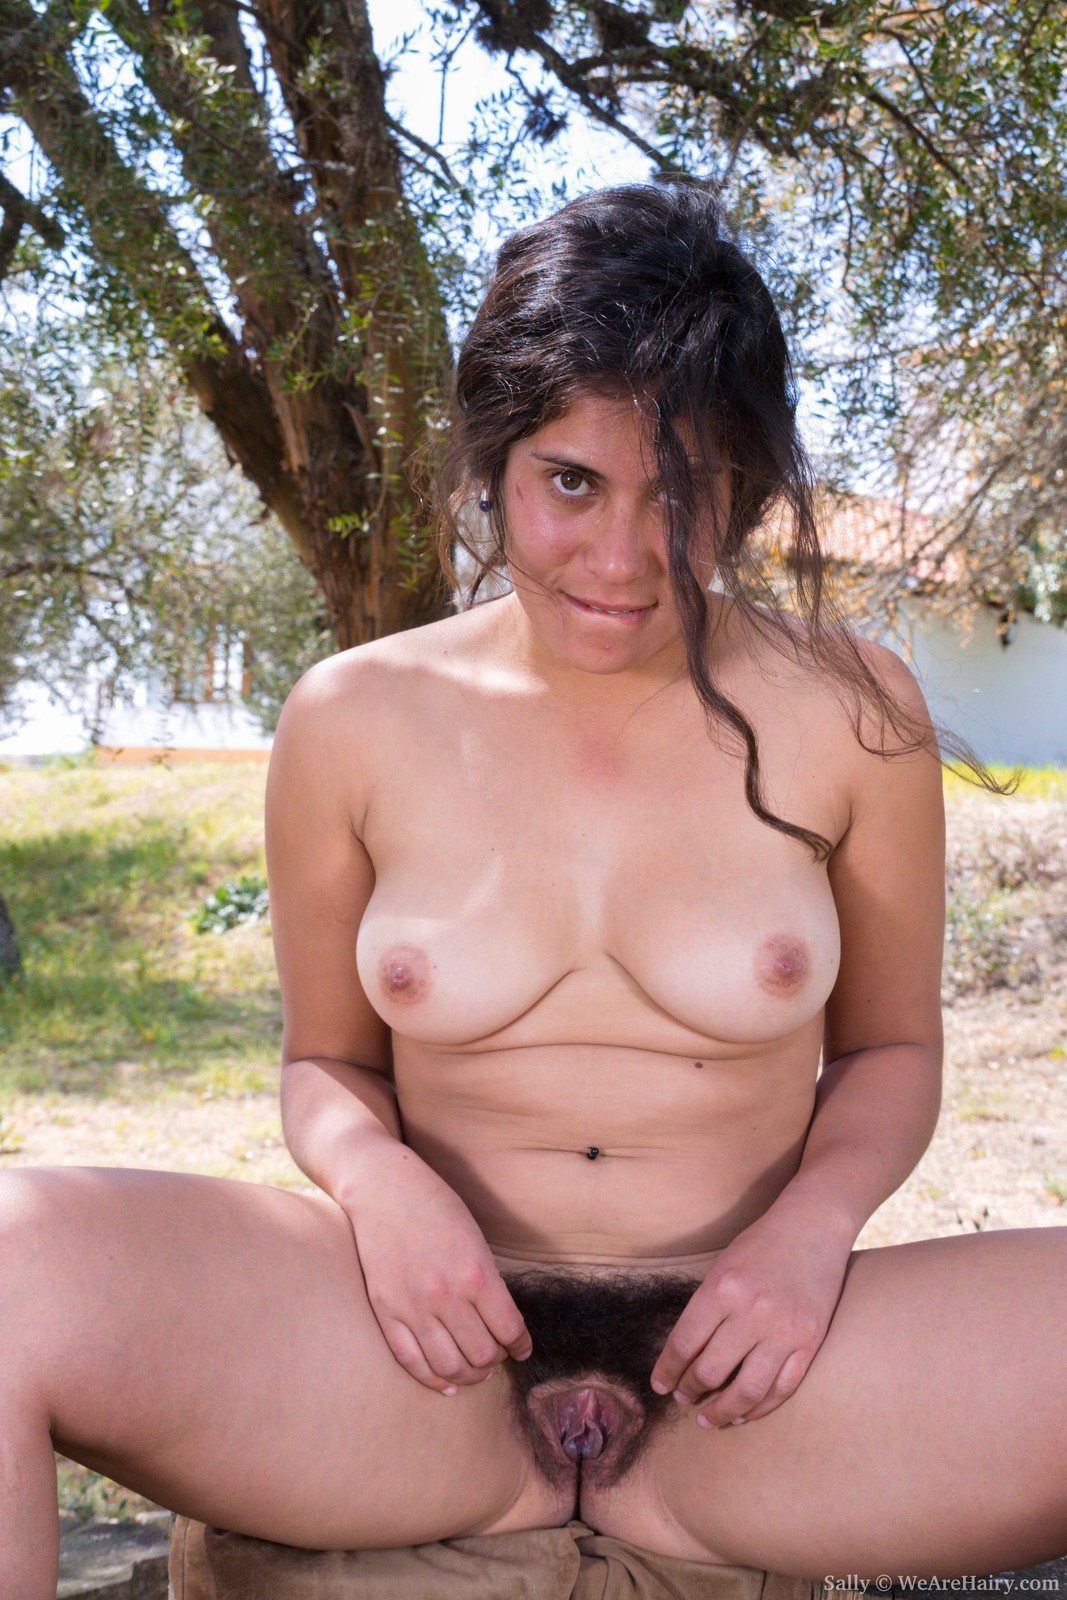 sally-is-outdoors-enjoying-the-sun-and-wants-to-get-some-sun-on-her-naked-body.-she-strips-naked-and-shows-off-her-36c-breasts-and-hairy-pussy.-her-body-is-sexy-outside-and-her-bush-is-so-beautiful.10.jpg